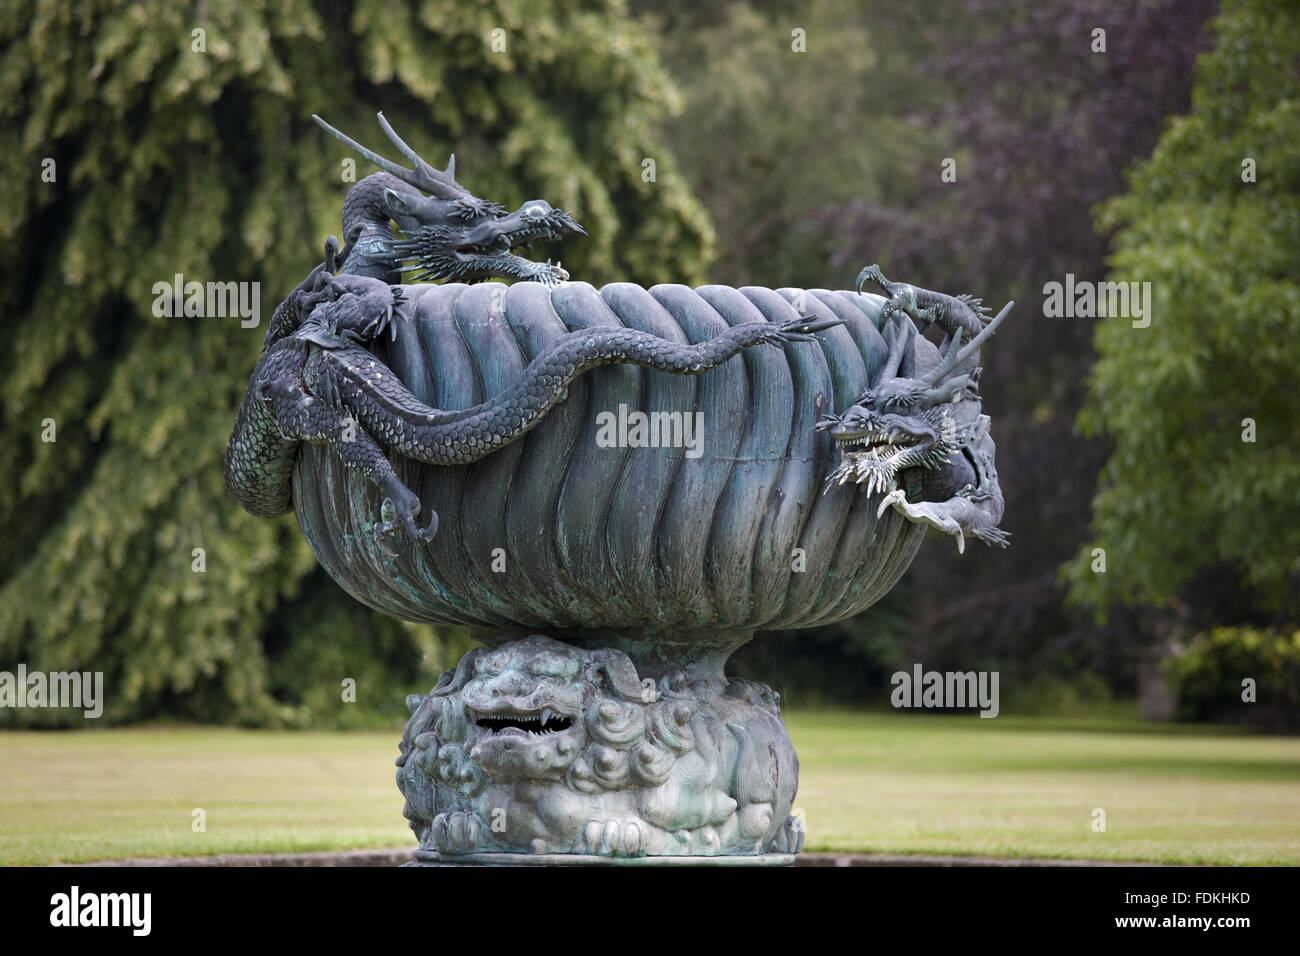 Bronze dragon fountain in the longitudinal canal on the Great Lawn at Dyffryn Gardens, Vale of Glamorgan. - Stock Image